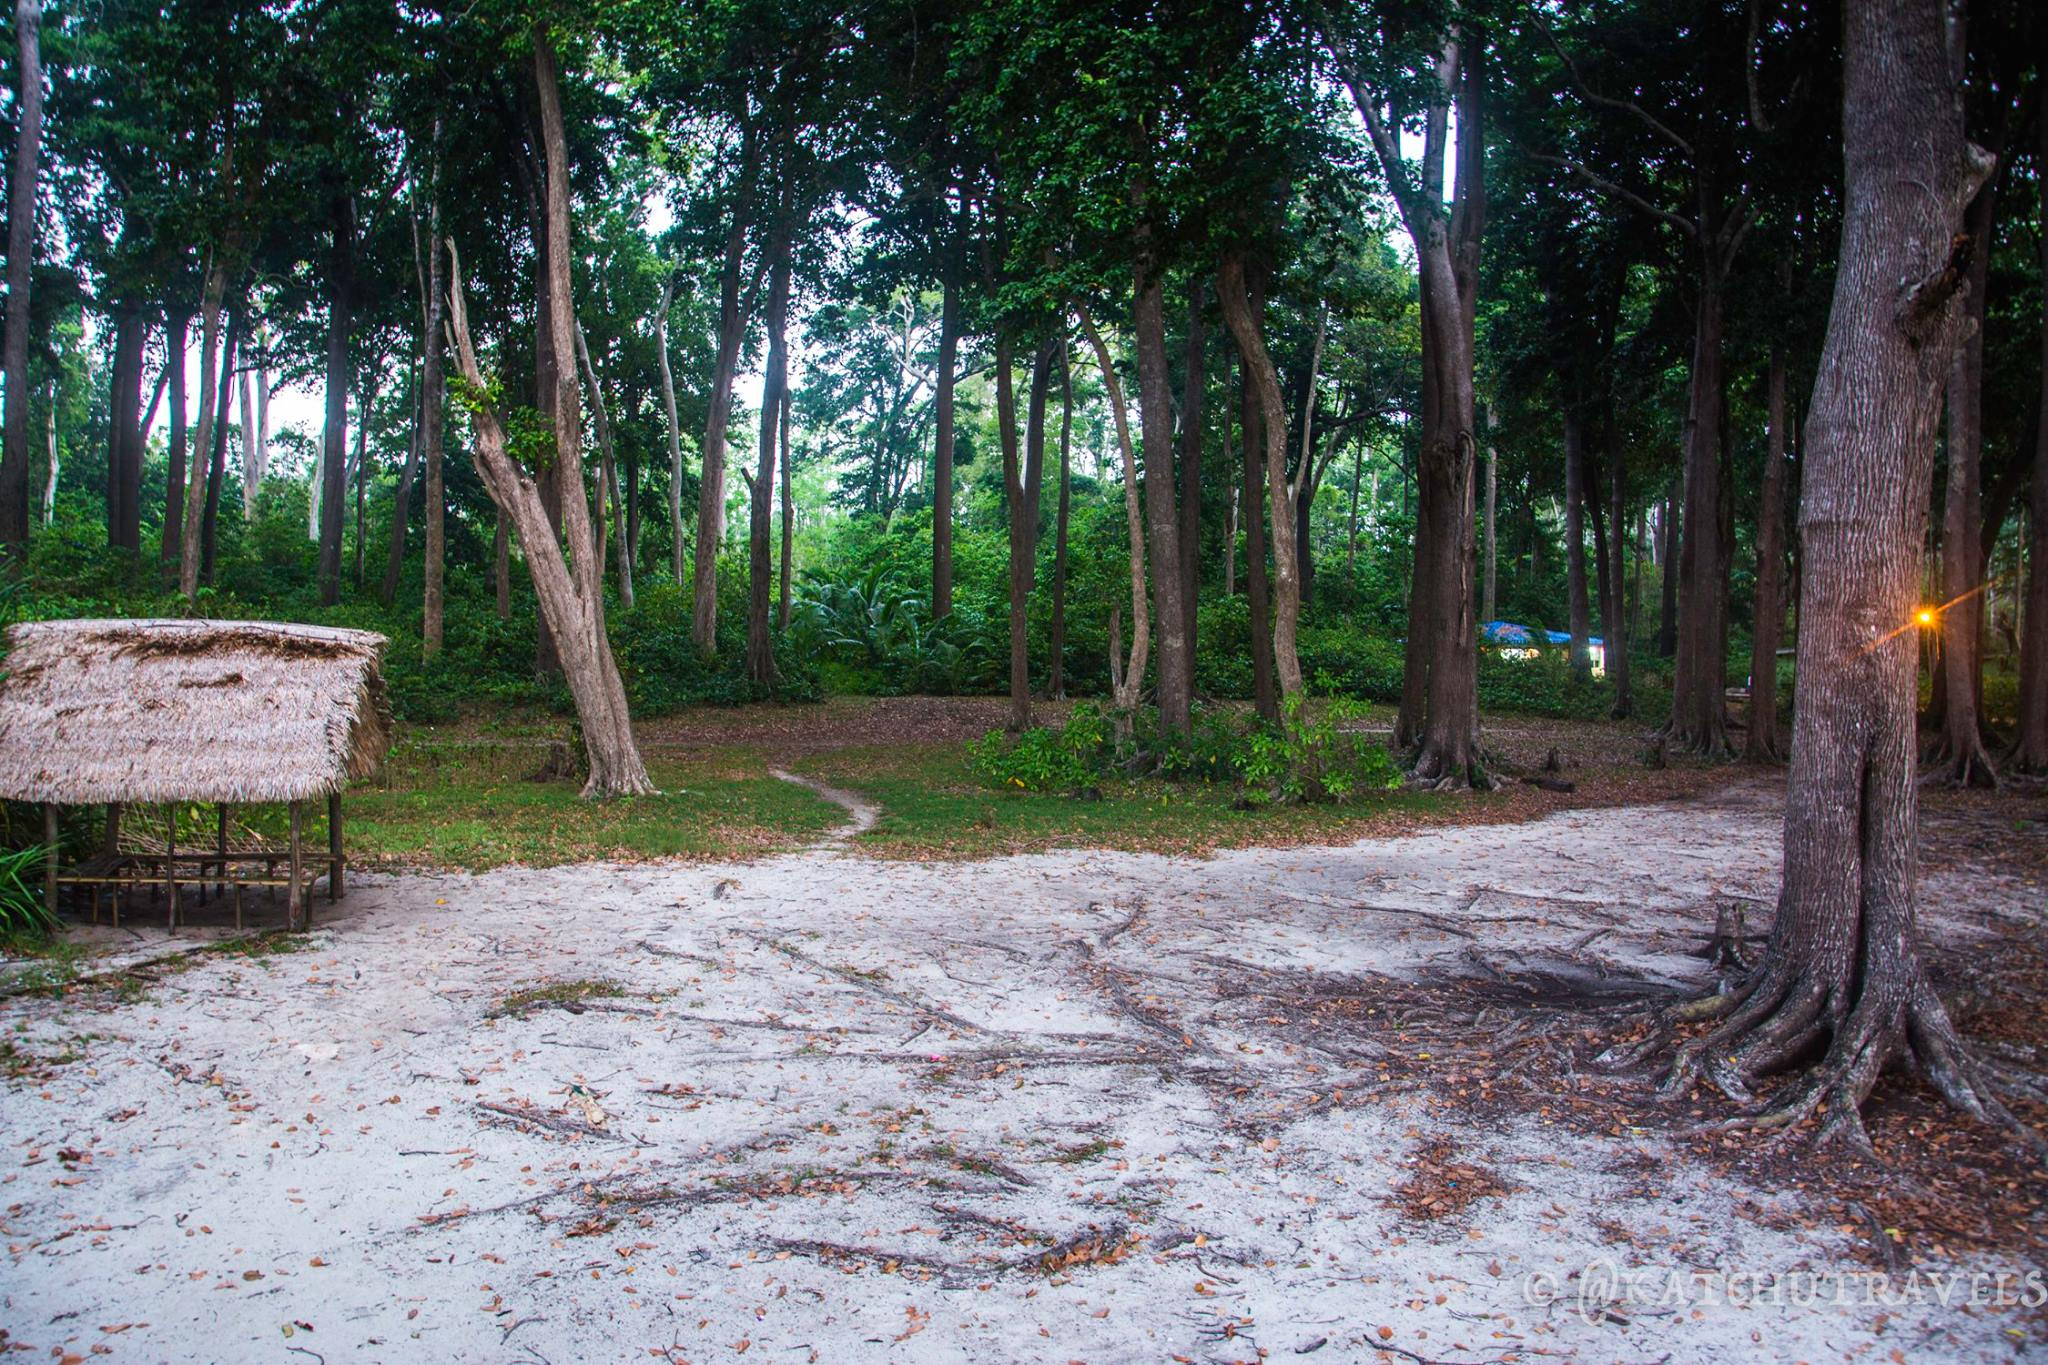 Wandering into the forests can be fun at Radhanagar Beach